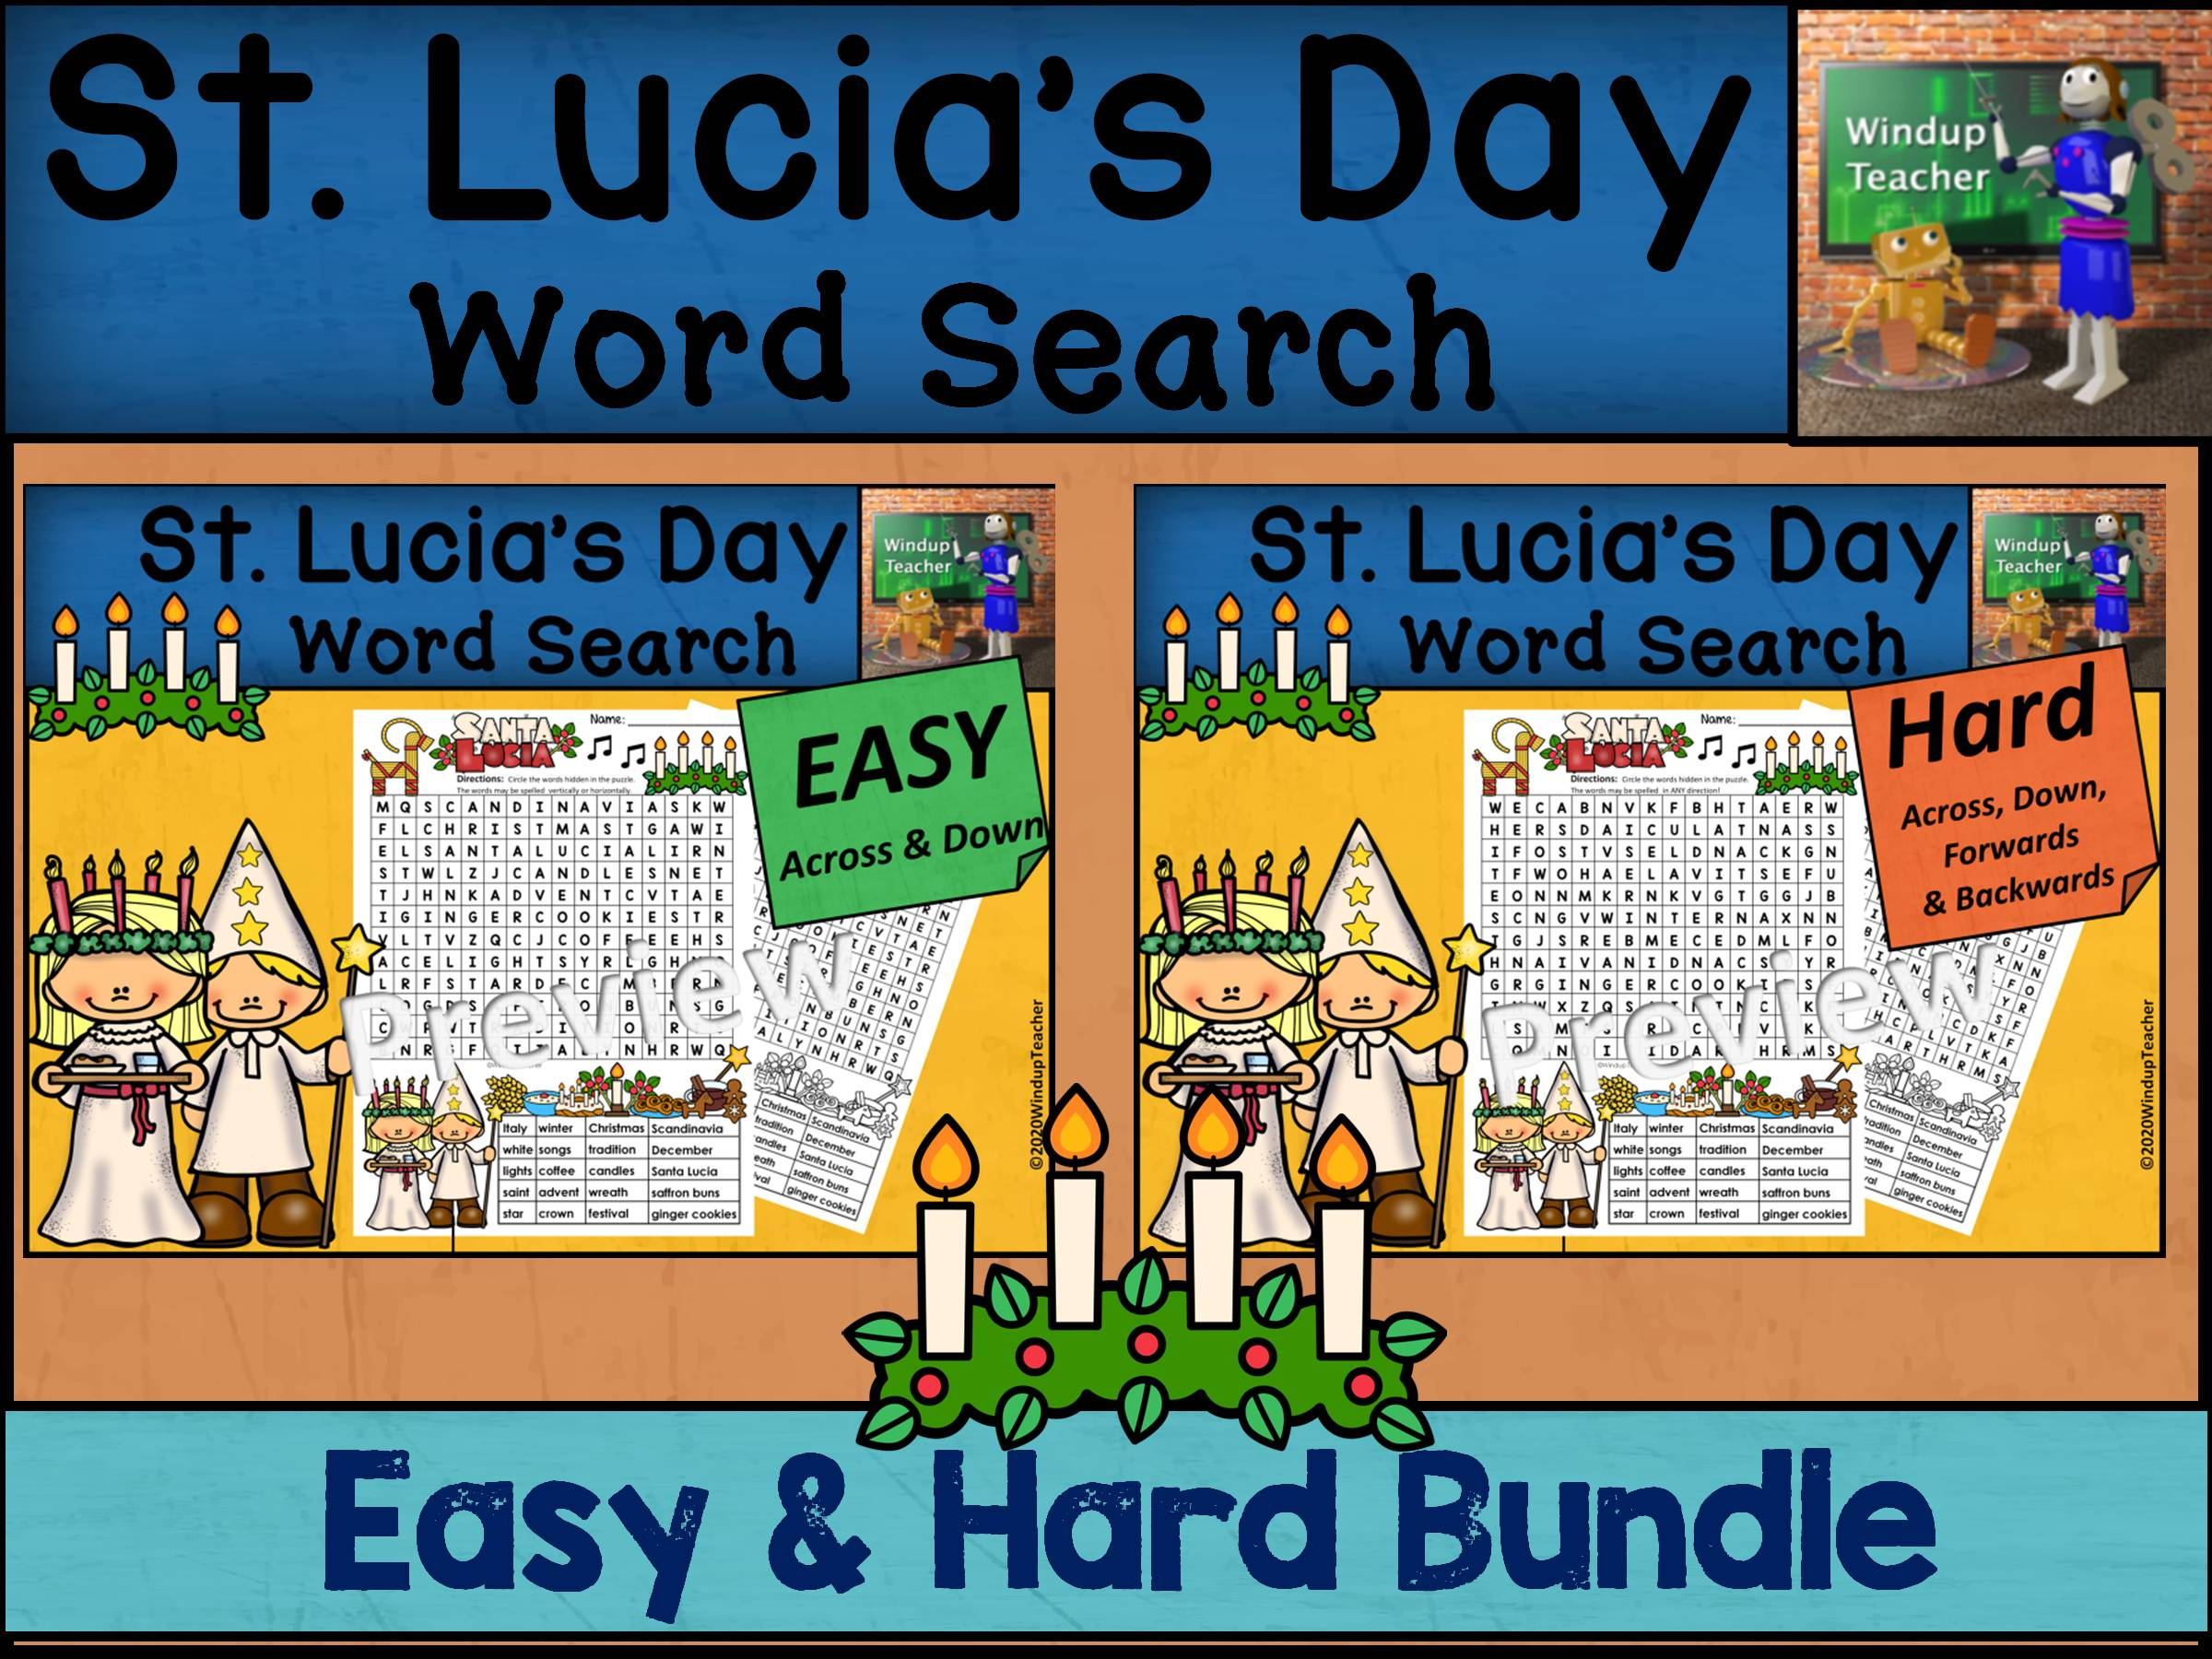 St. Lucia's Day Word Search BUNDLE - Easy and Hard Bundle